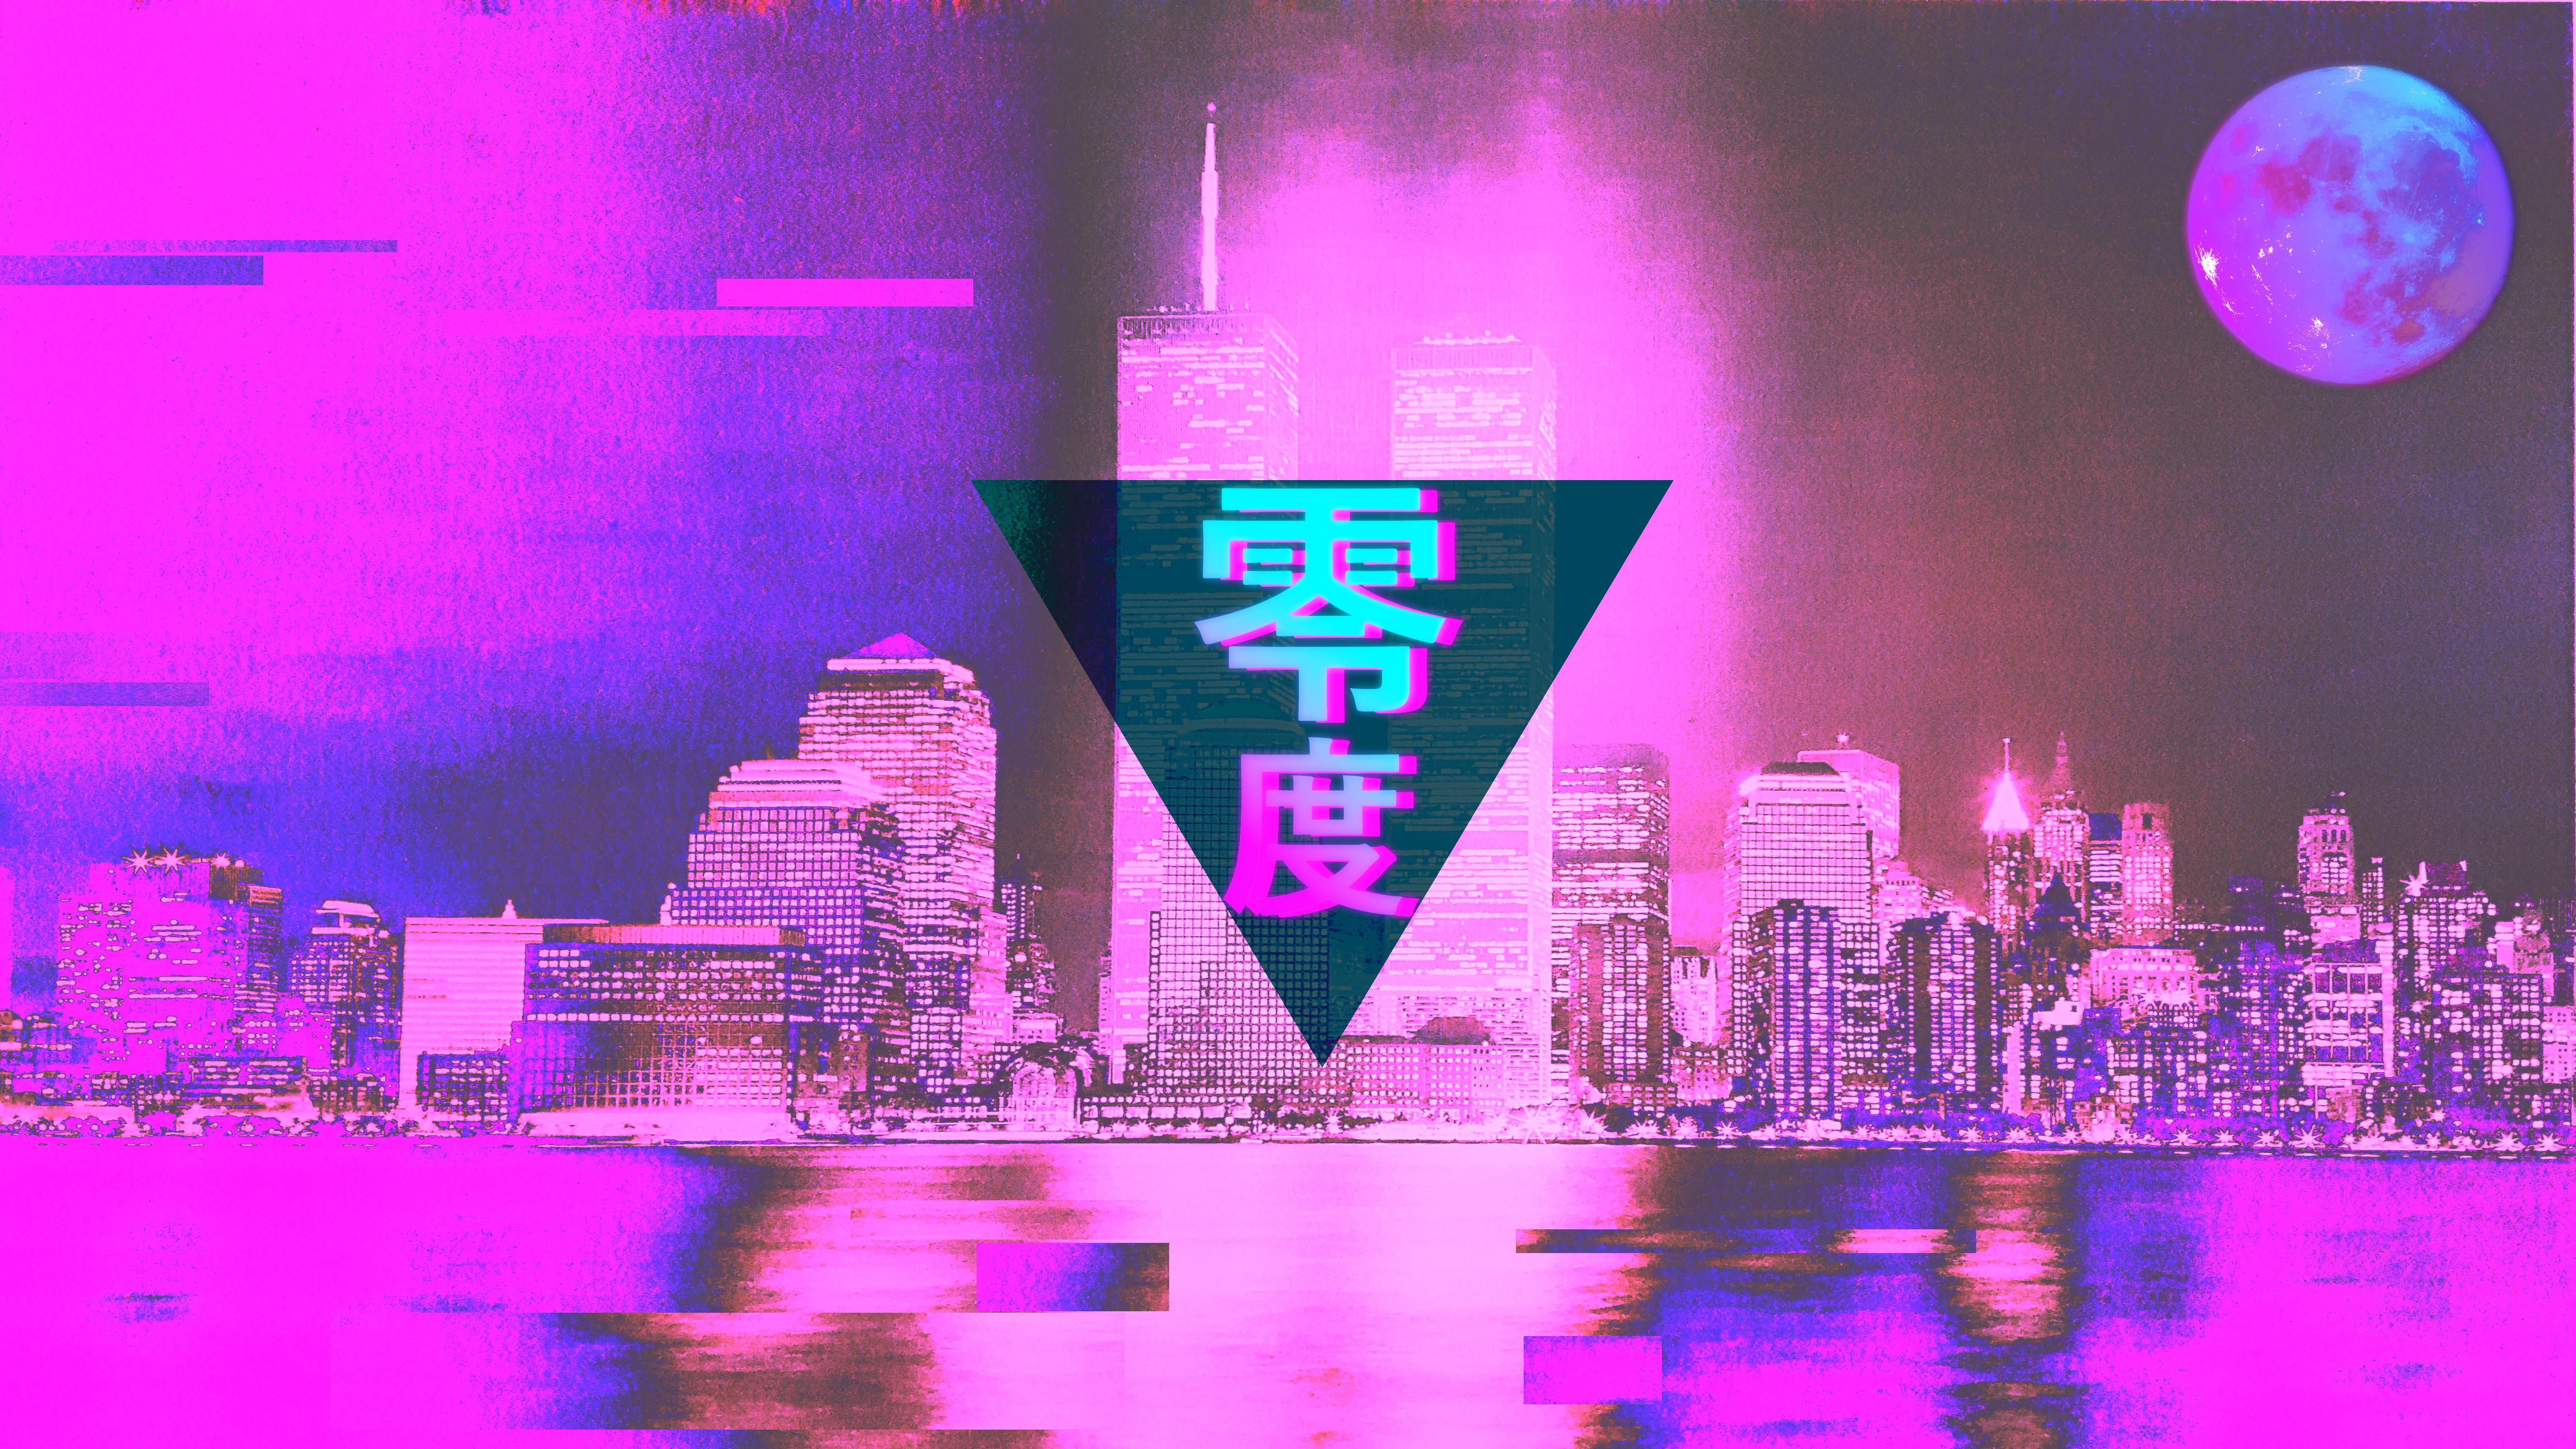 a very aesthetic wallpaper VaporwaveAesthetics 5312x2988